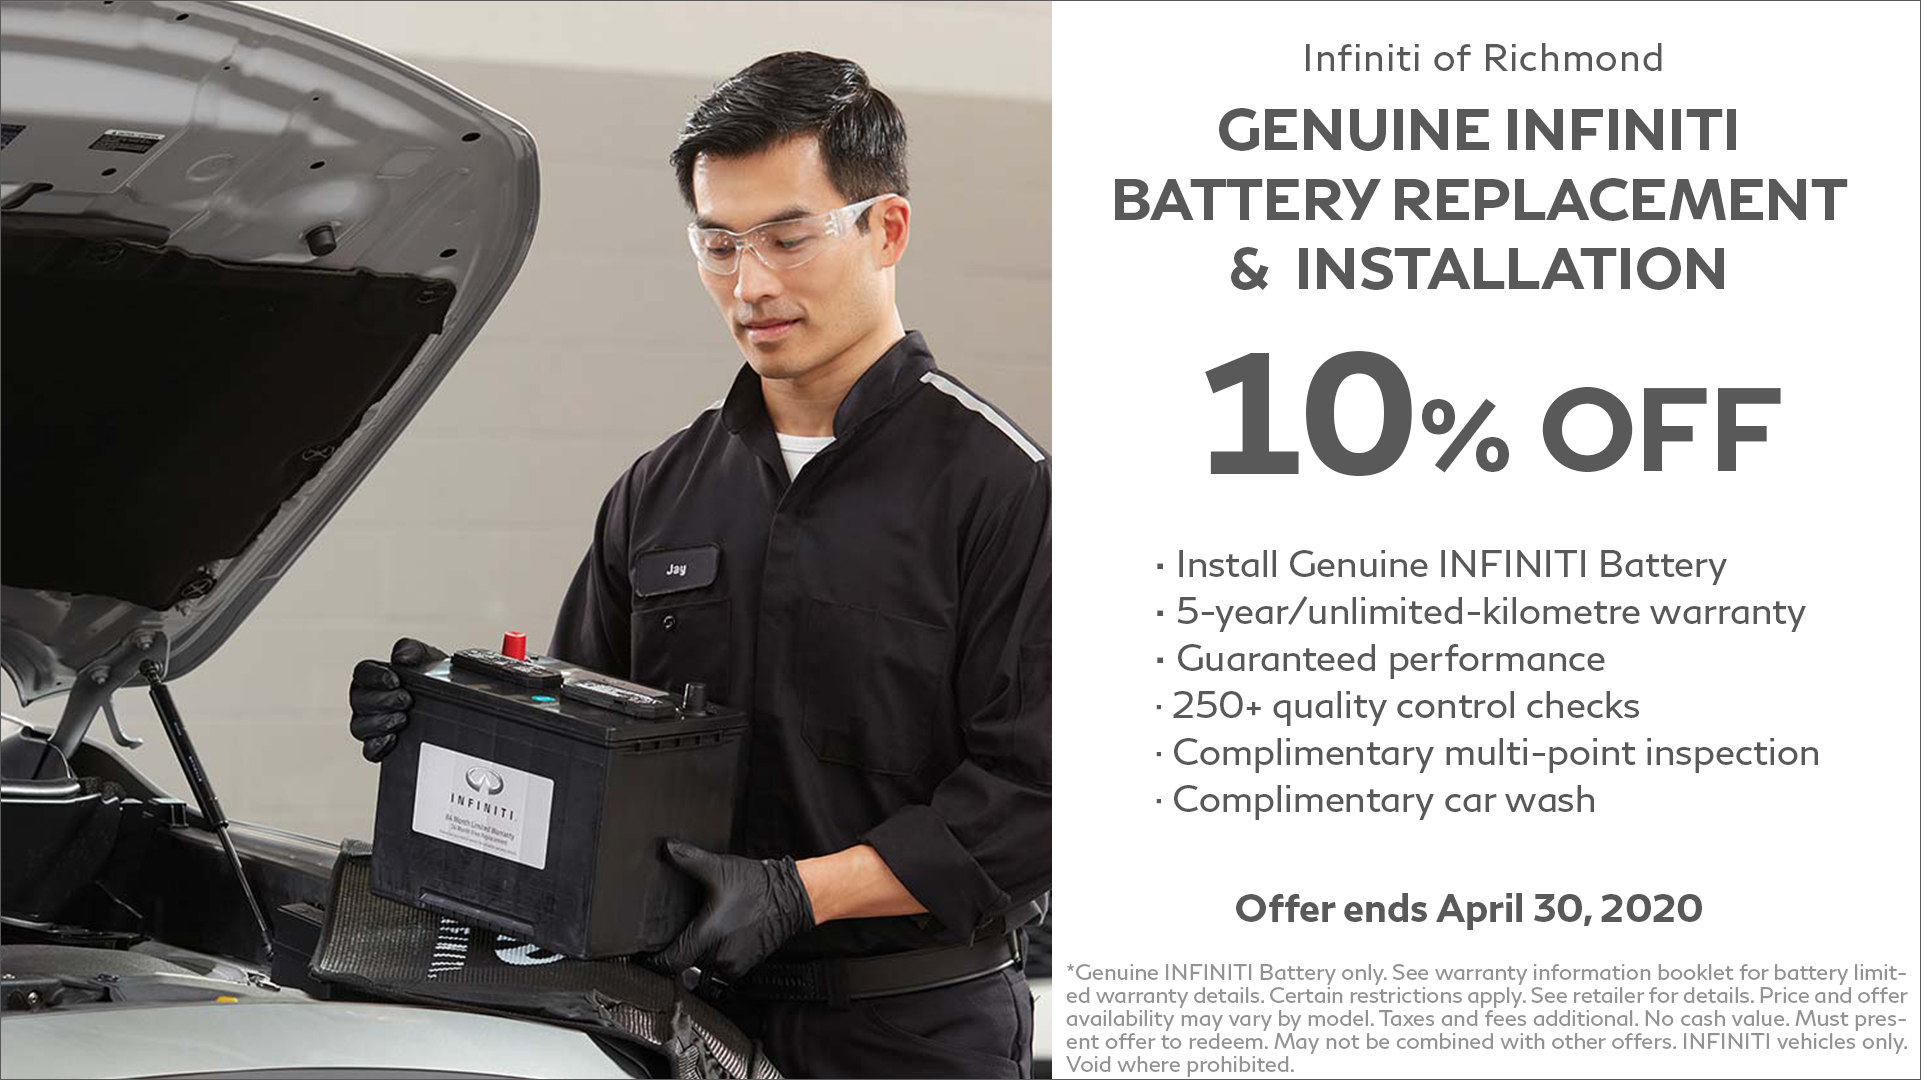 Genuine Infiniti Battery Replacement Installation at Infiniti of Richmond